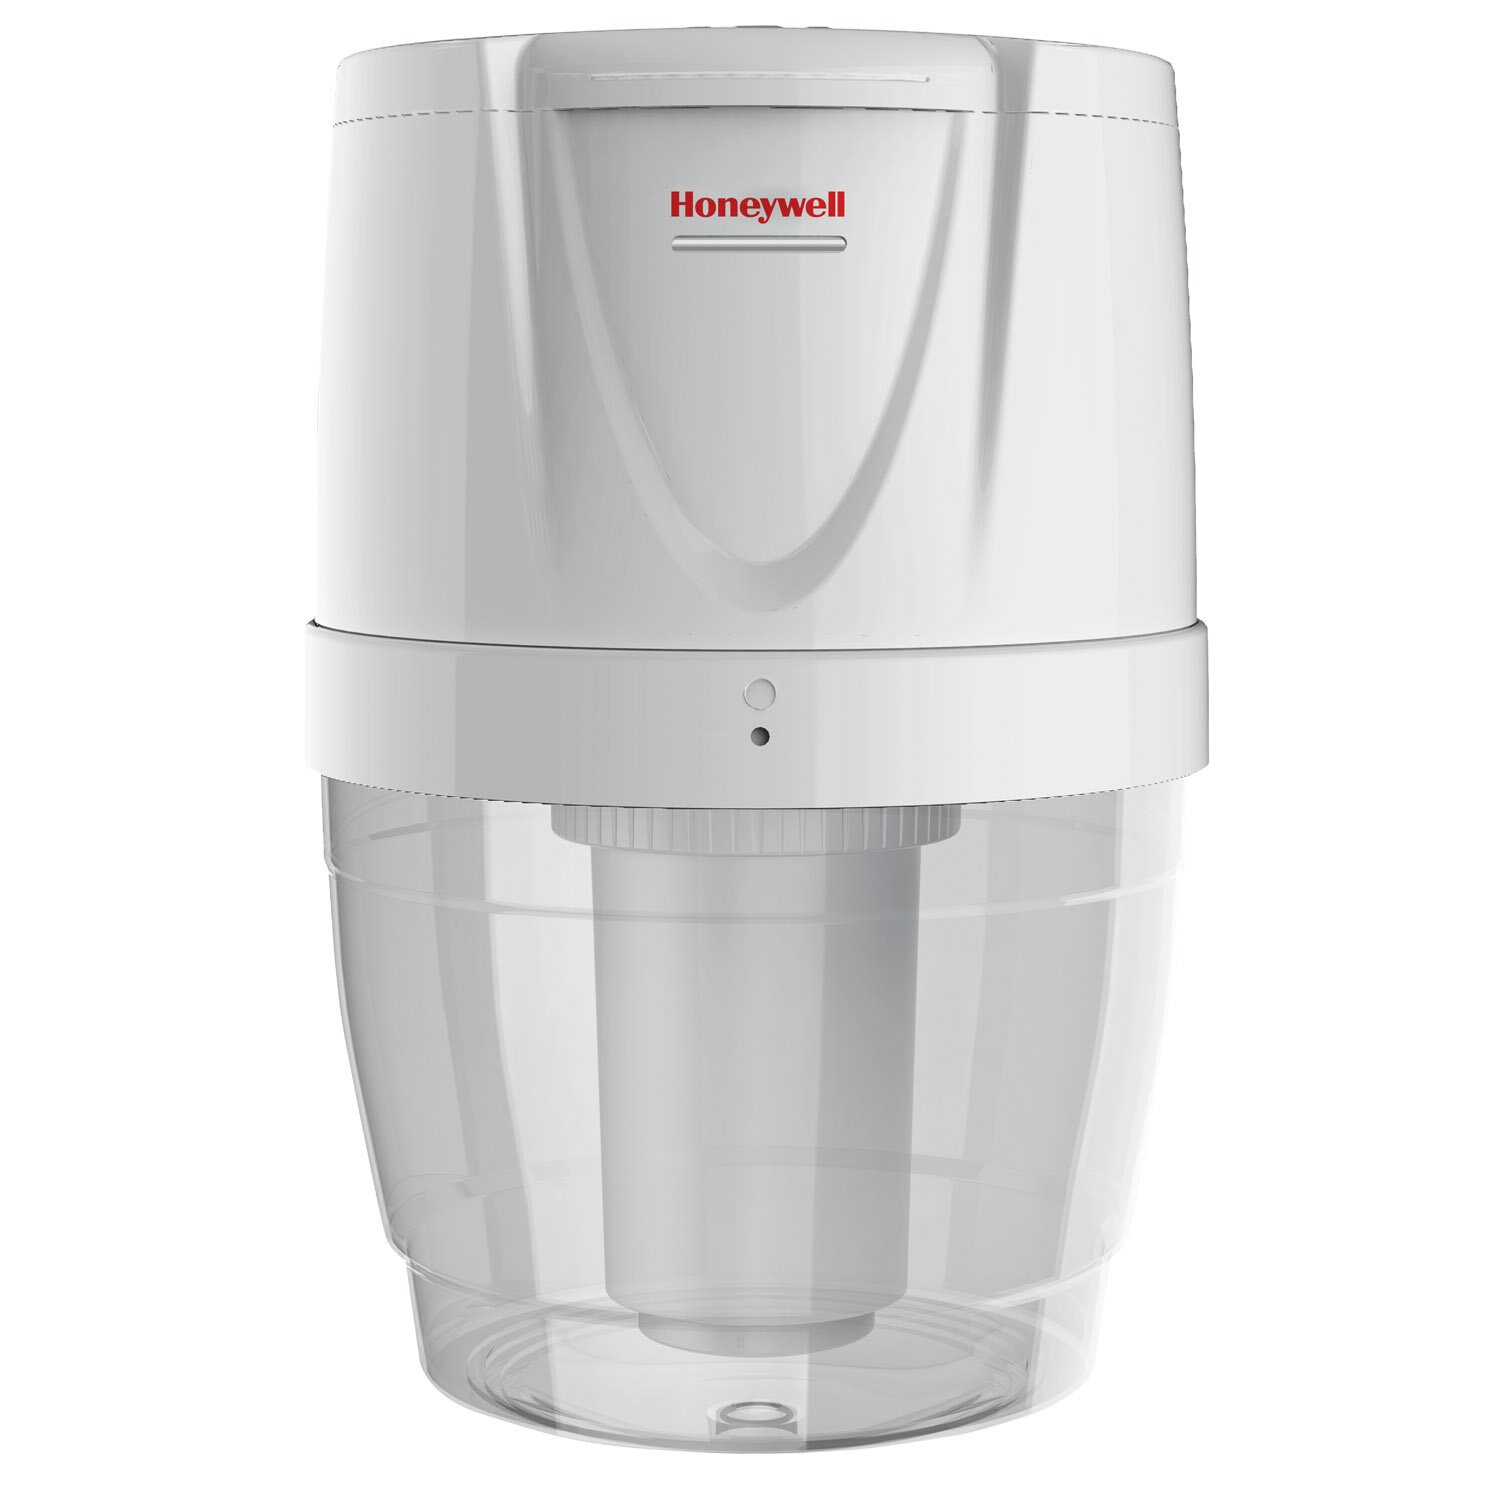 Honeywell water cooler filtration system reviews wayfair for Water fountain filtration system